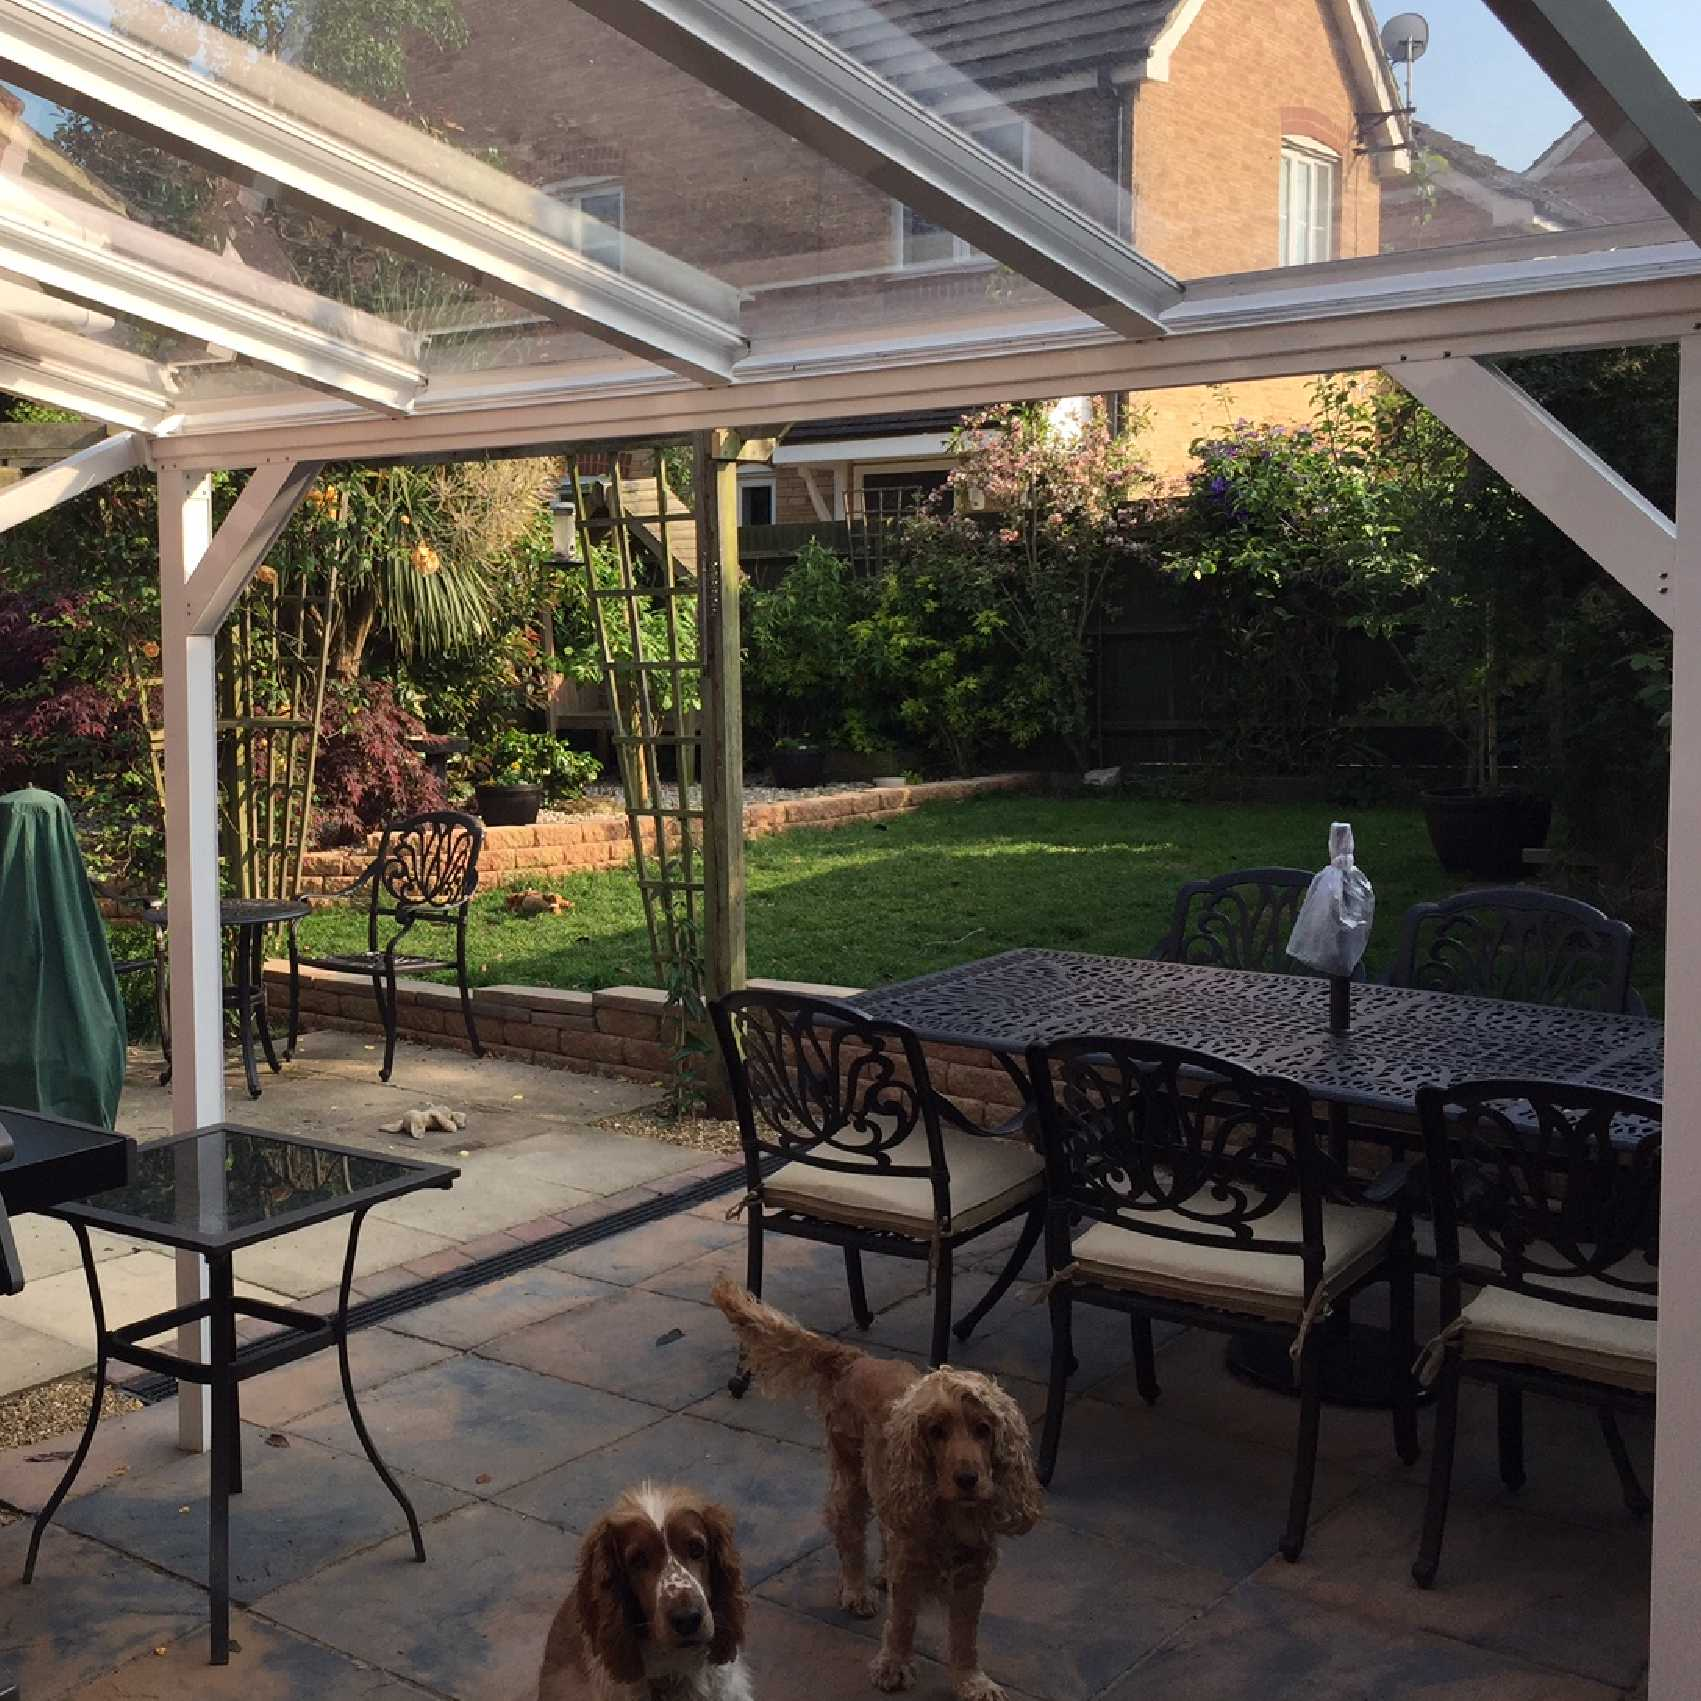 Affordable Omega Smart White Lean-To Canopy with 6mm Glass Clear Plate Polycarbonate Glazing - 8.4m (W) x 2.0m (P), (4) Supporting Posts